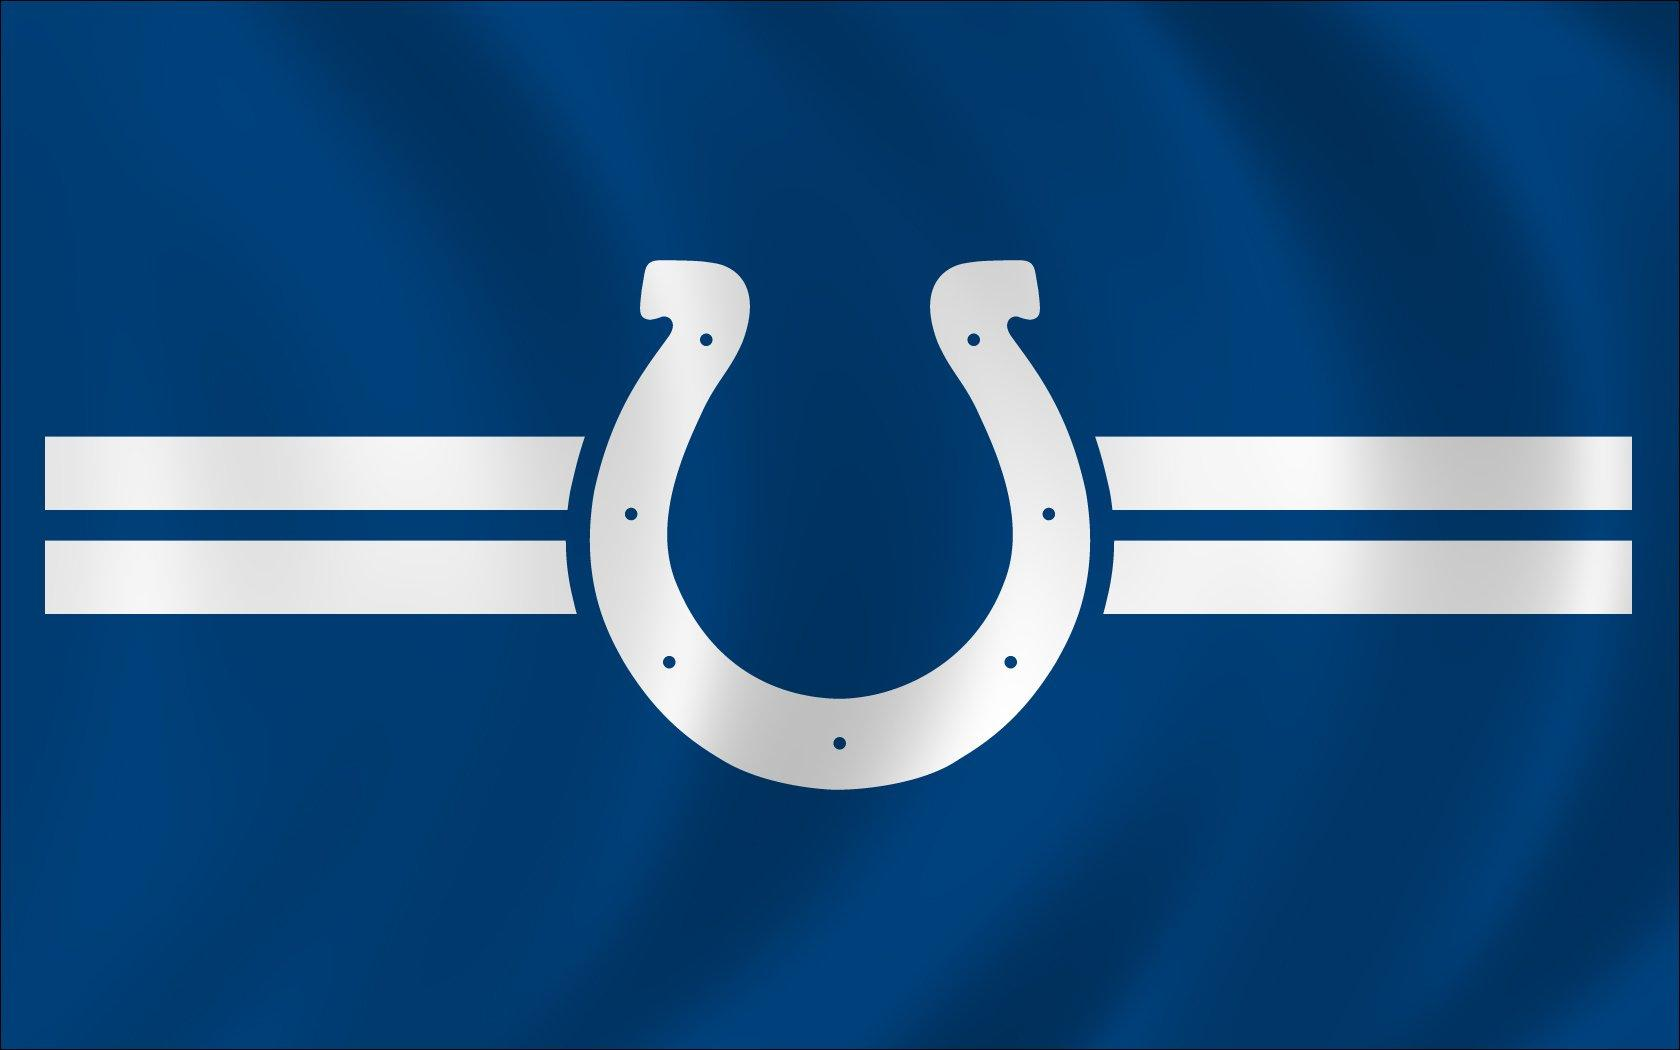 Indianapolis Colts Wallpaper and Background Image | 1680x1050 | ID ...